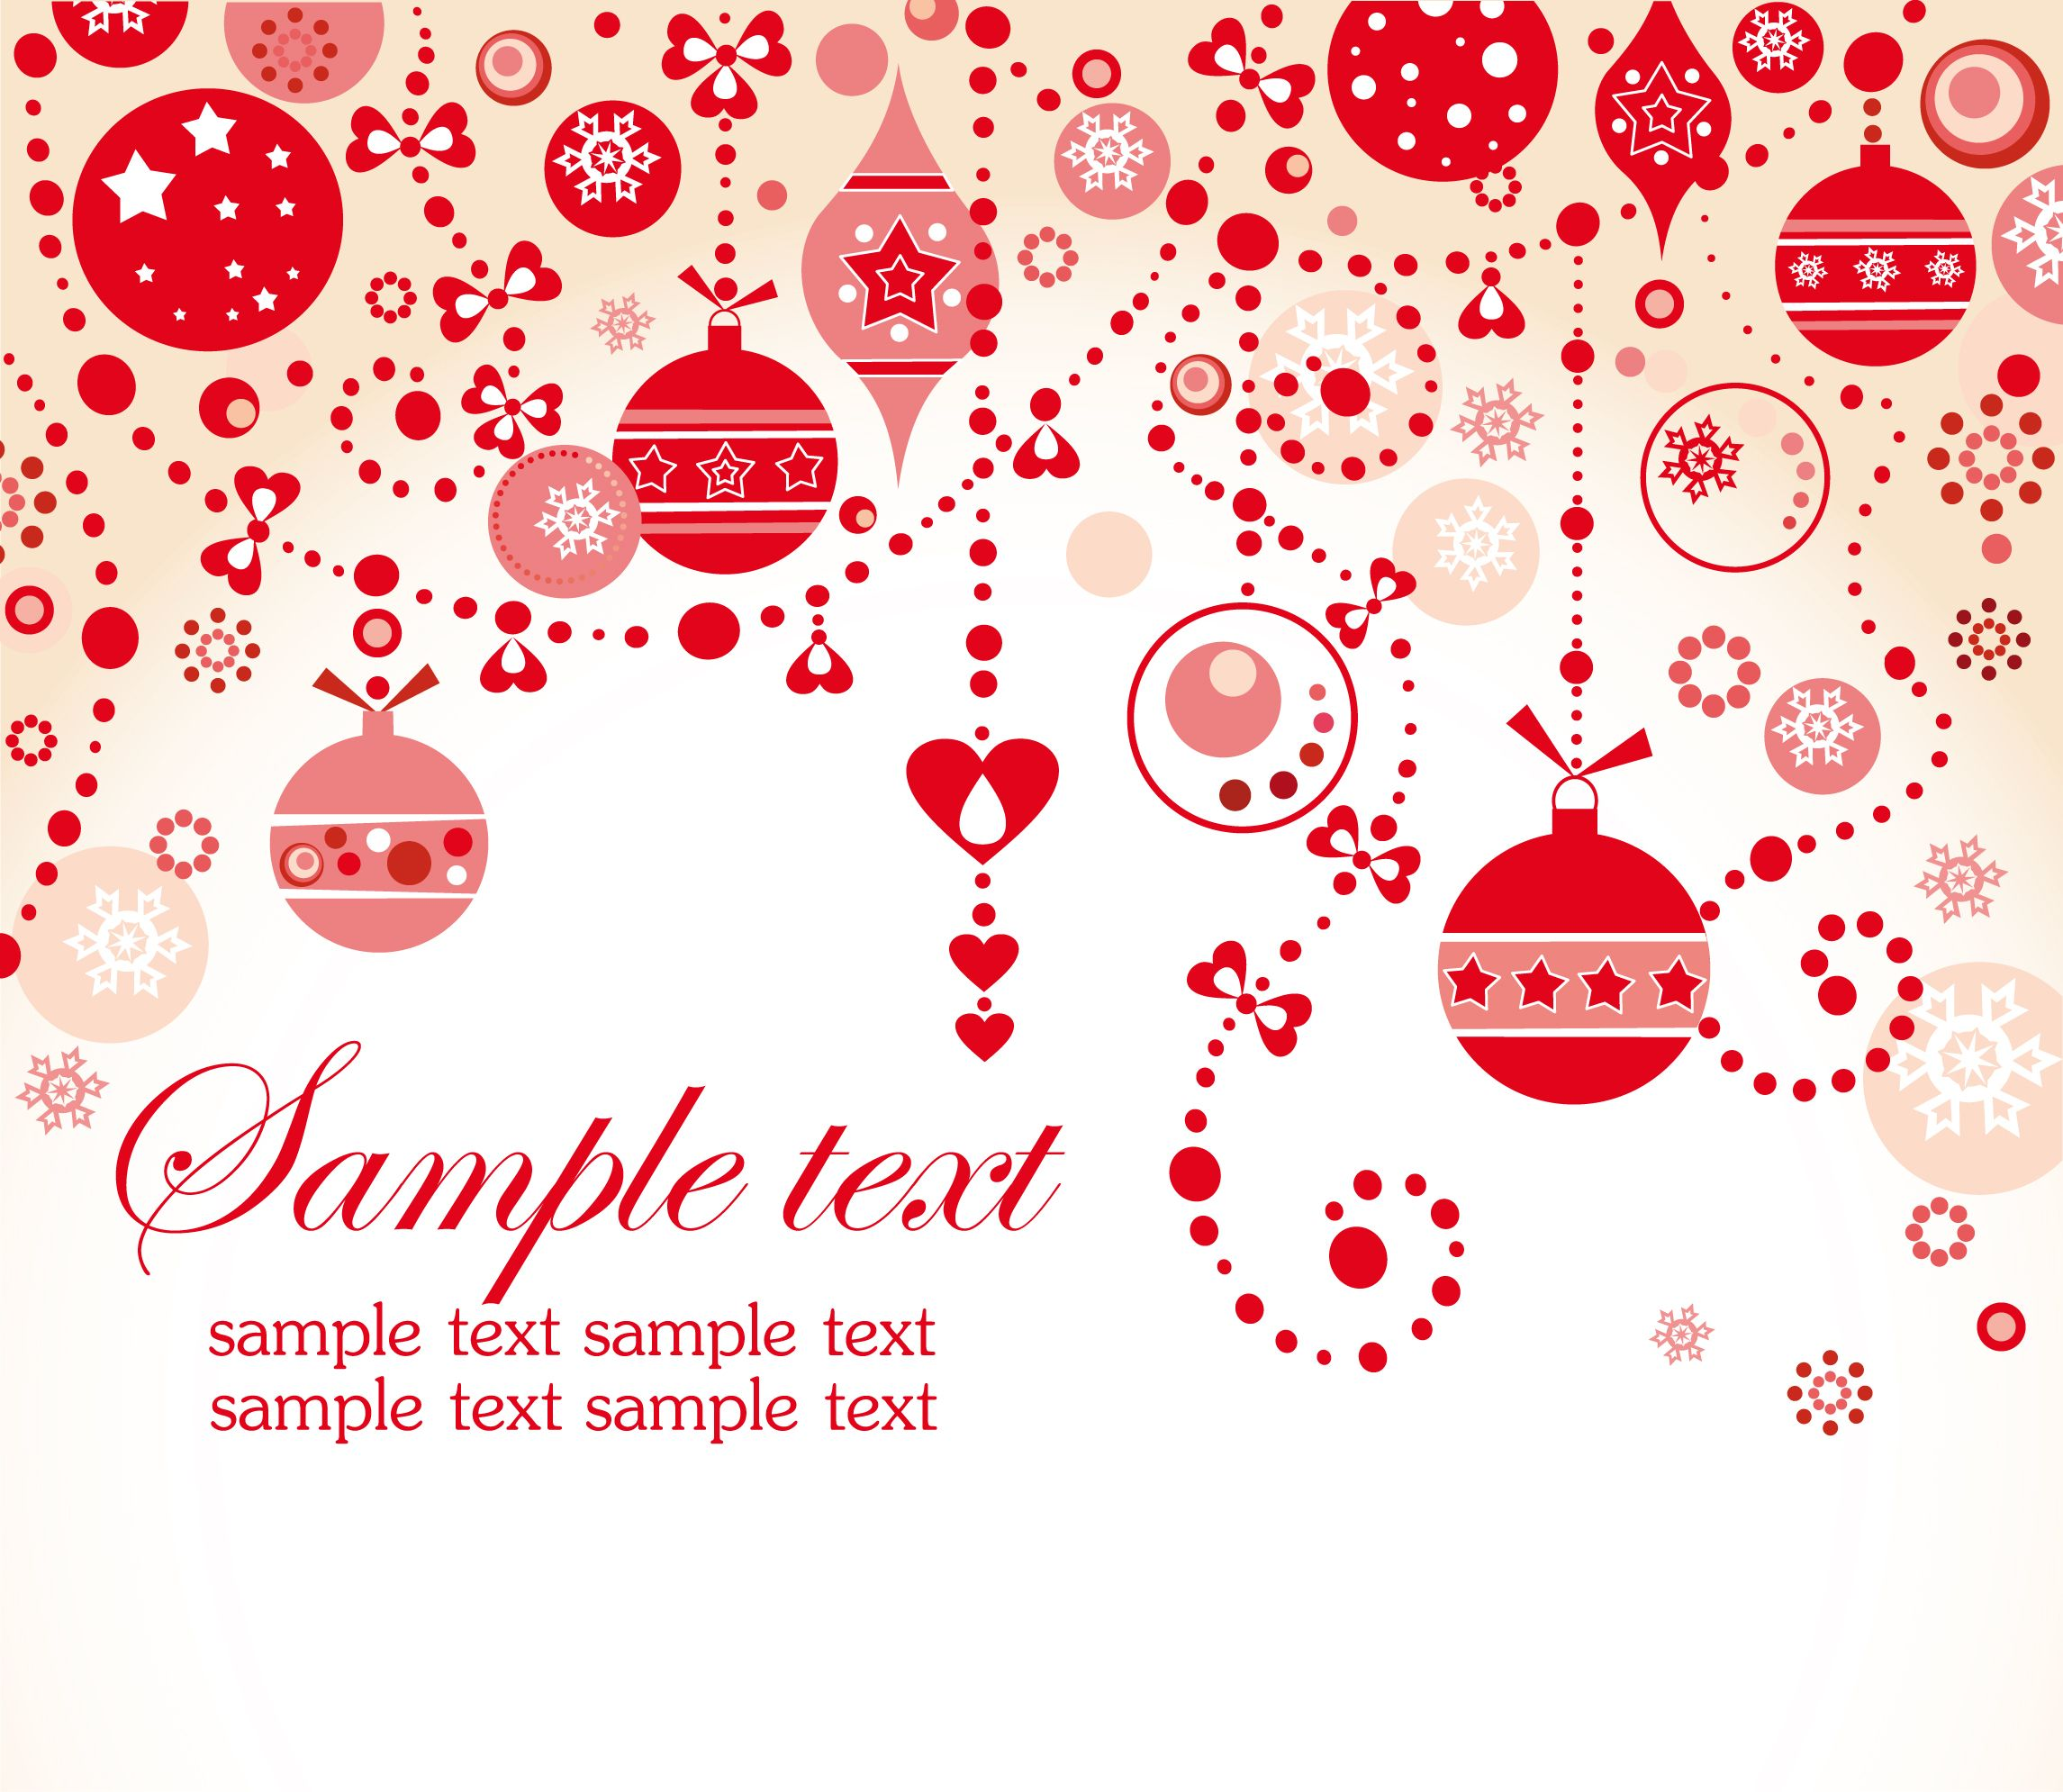 Free Vector Christmas Backgrounds | free-vector-beautiful-christmas ...